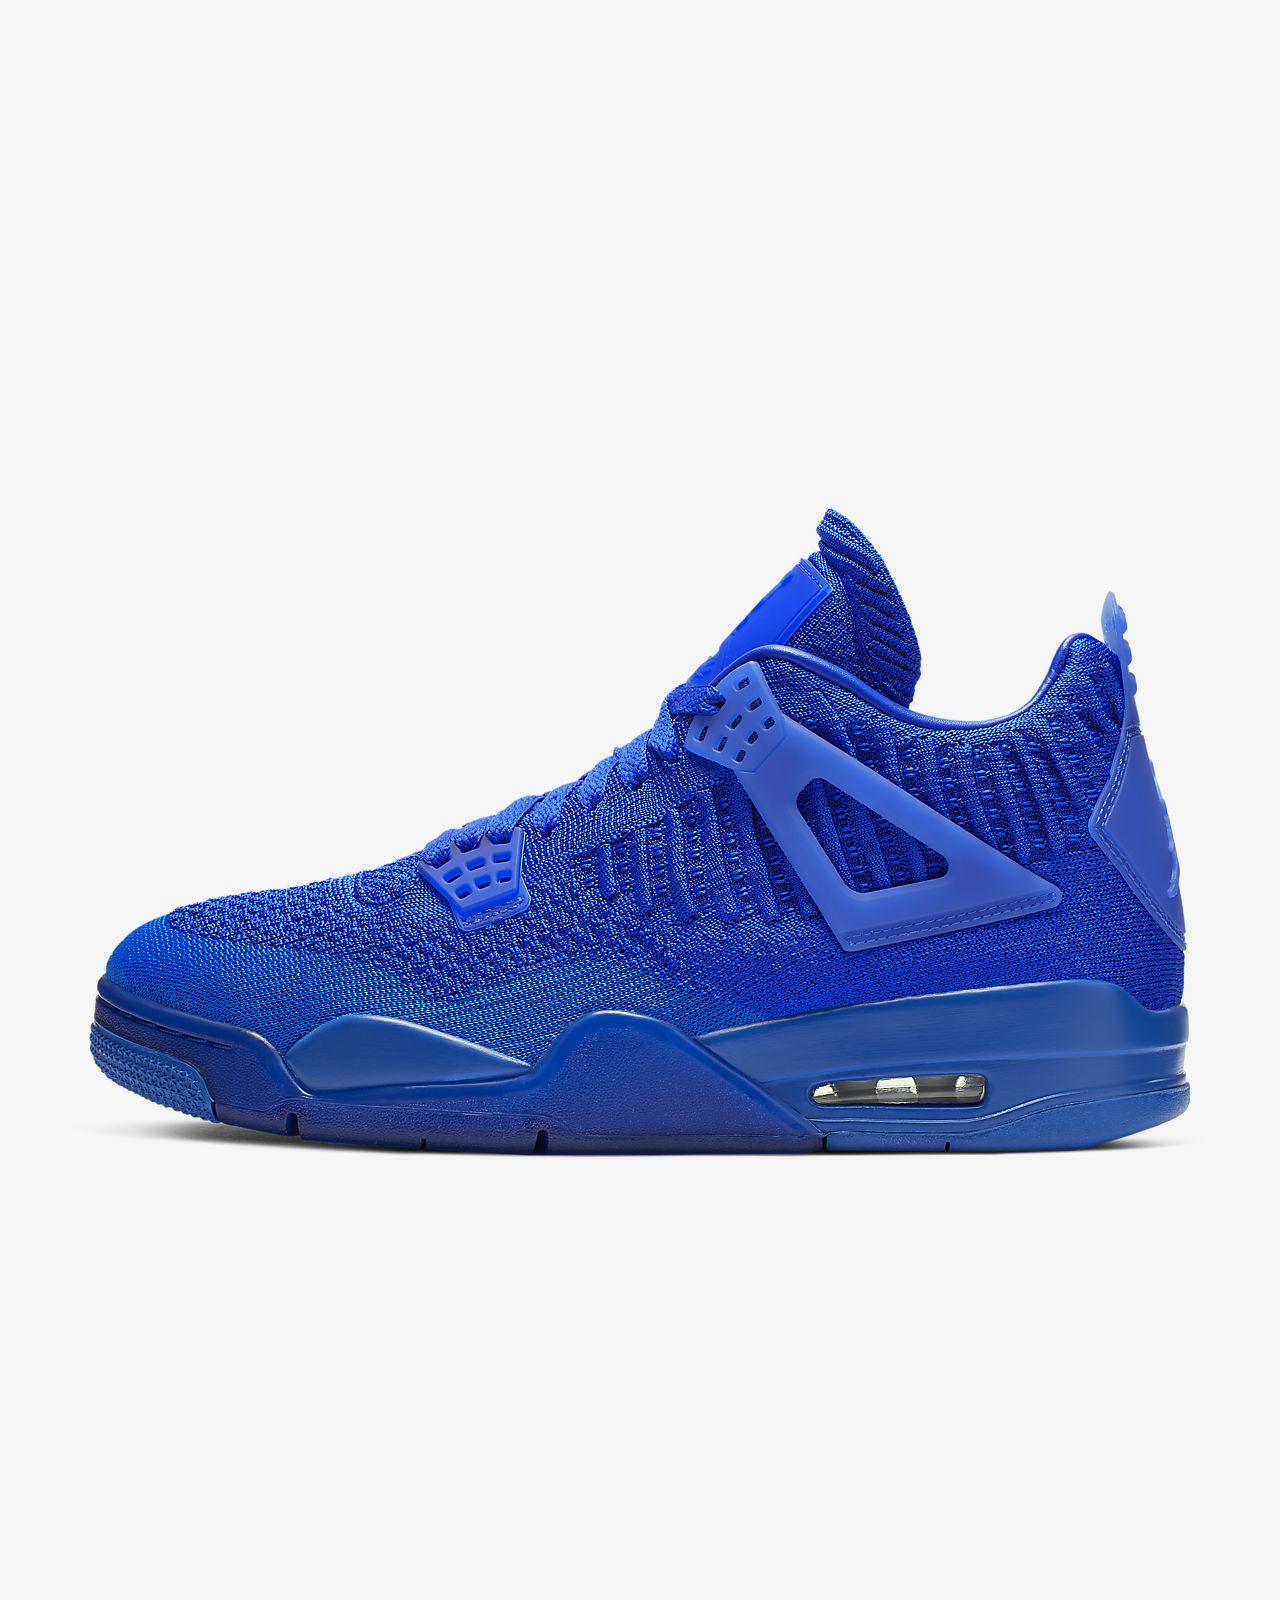 Air Jordan 4 Retro Flyknit Men's Shoe